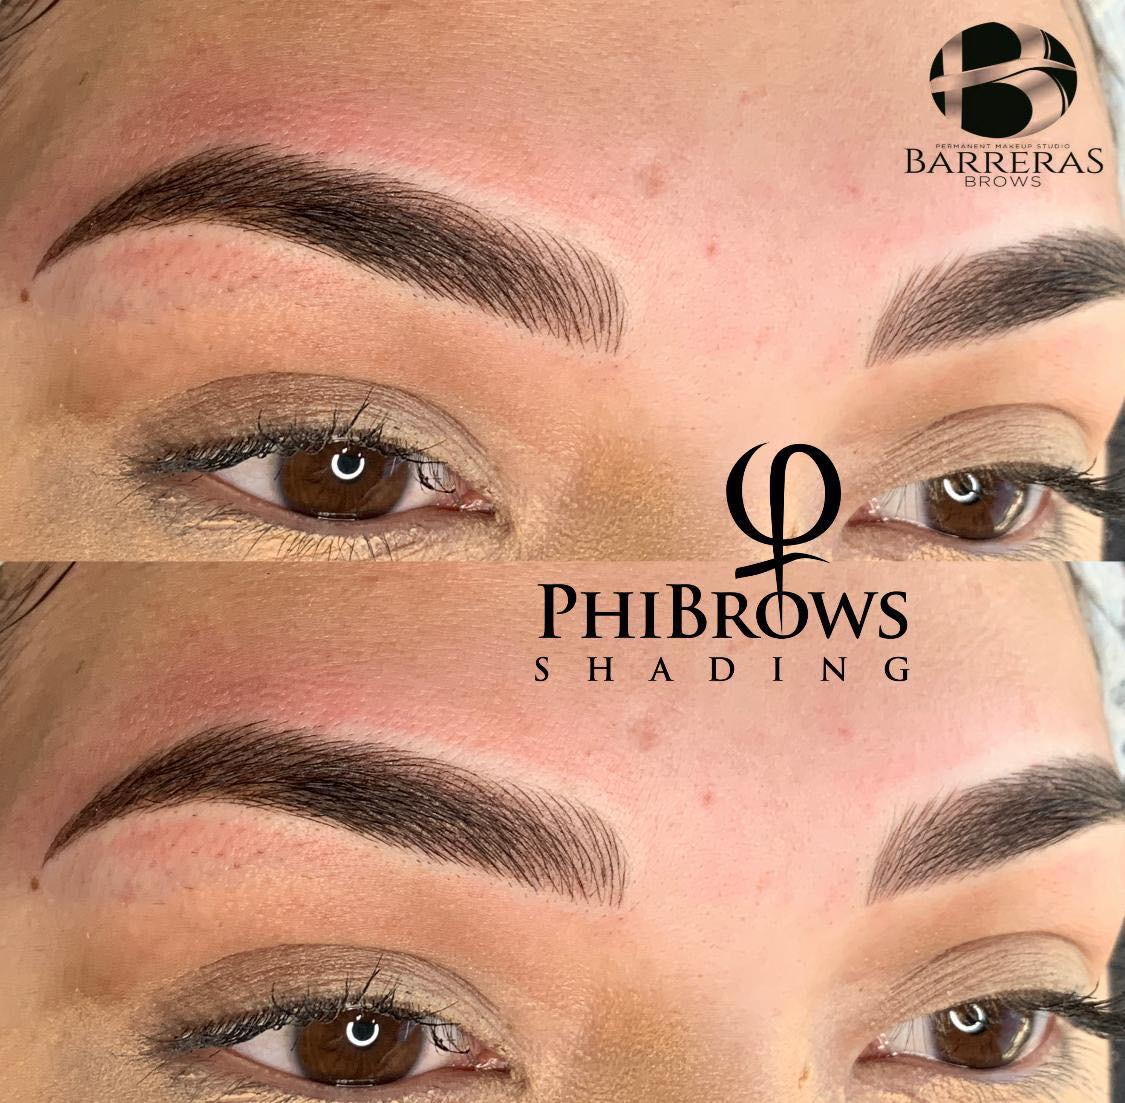 Phibrows shading Sandra Barreras